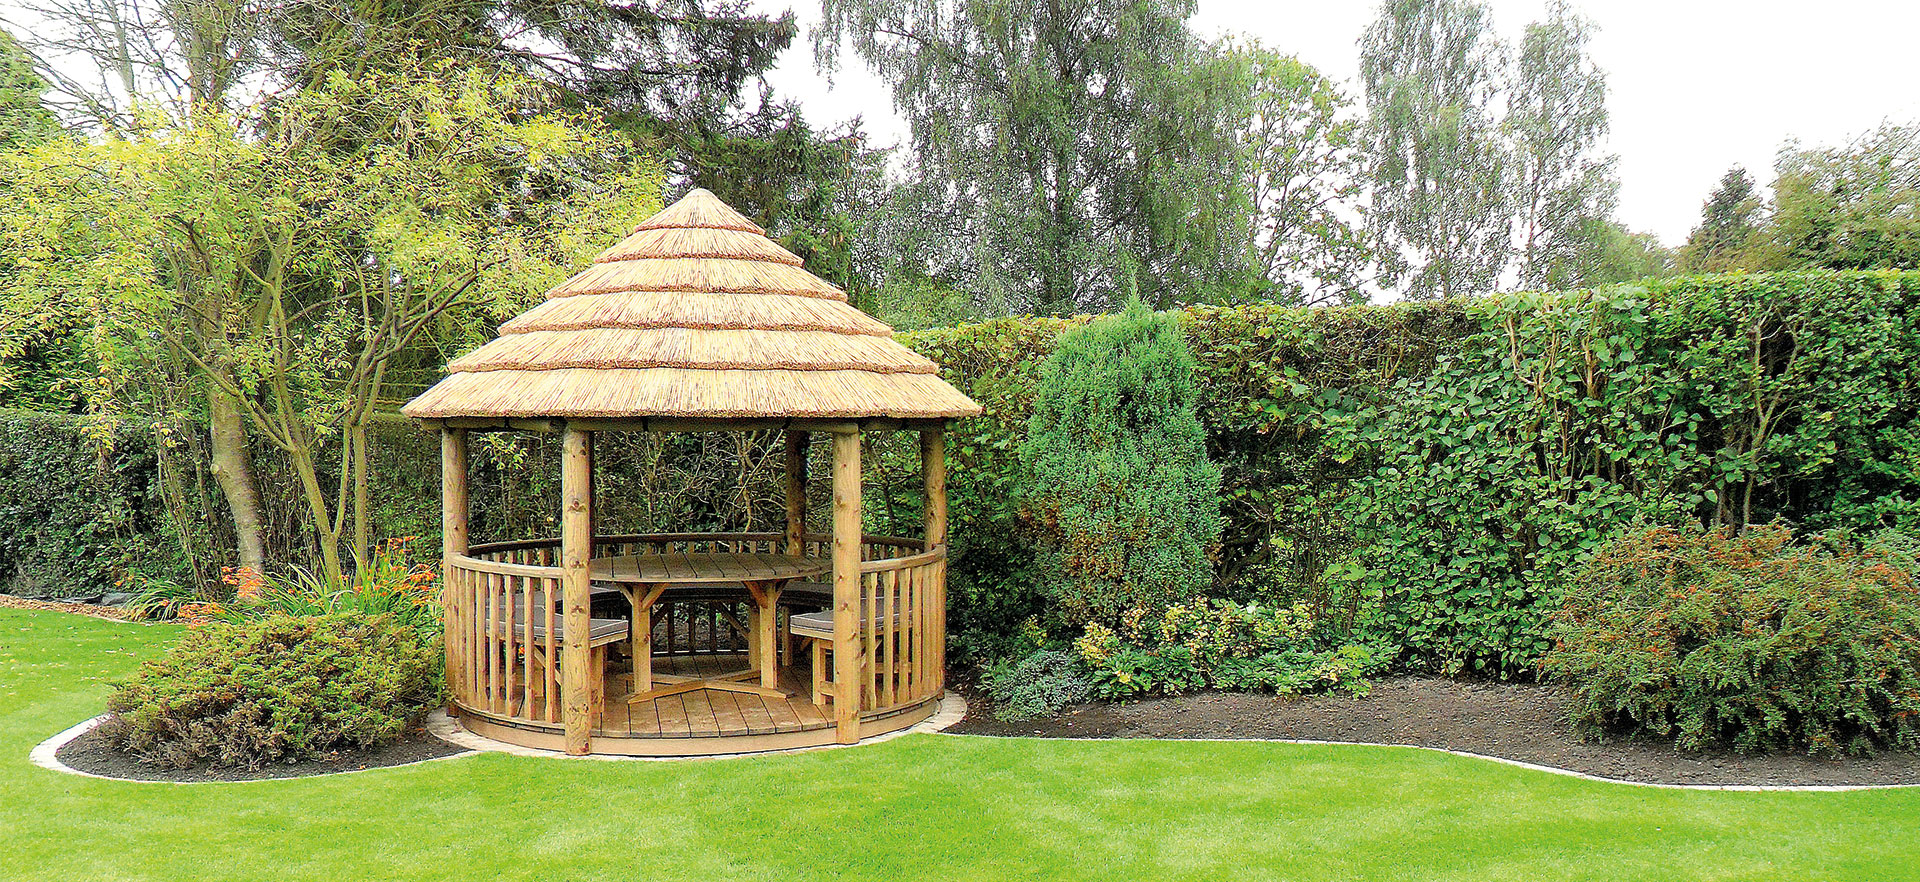 3 metre thatched roof gazebo surrounded by greenery